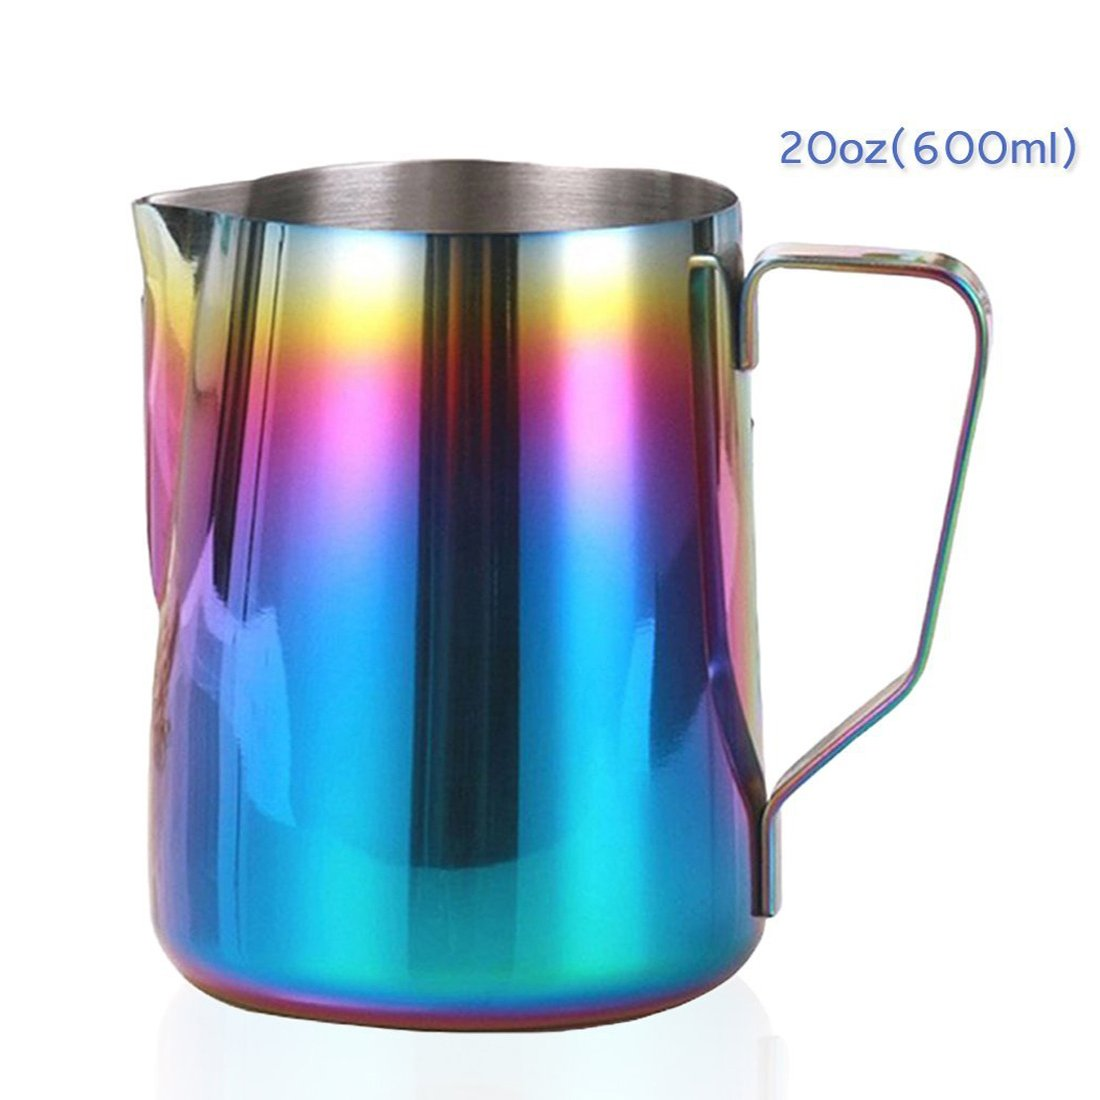 Milk Frothing Pitcher Stainless Steel - BEMINH Rainbow Color Custom Coffee Mugs - Milk Steaming Frother for Espresso Machines,Milk Frothers & Latte Art, Cappuccino Maker (20-Ounce/600ml)